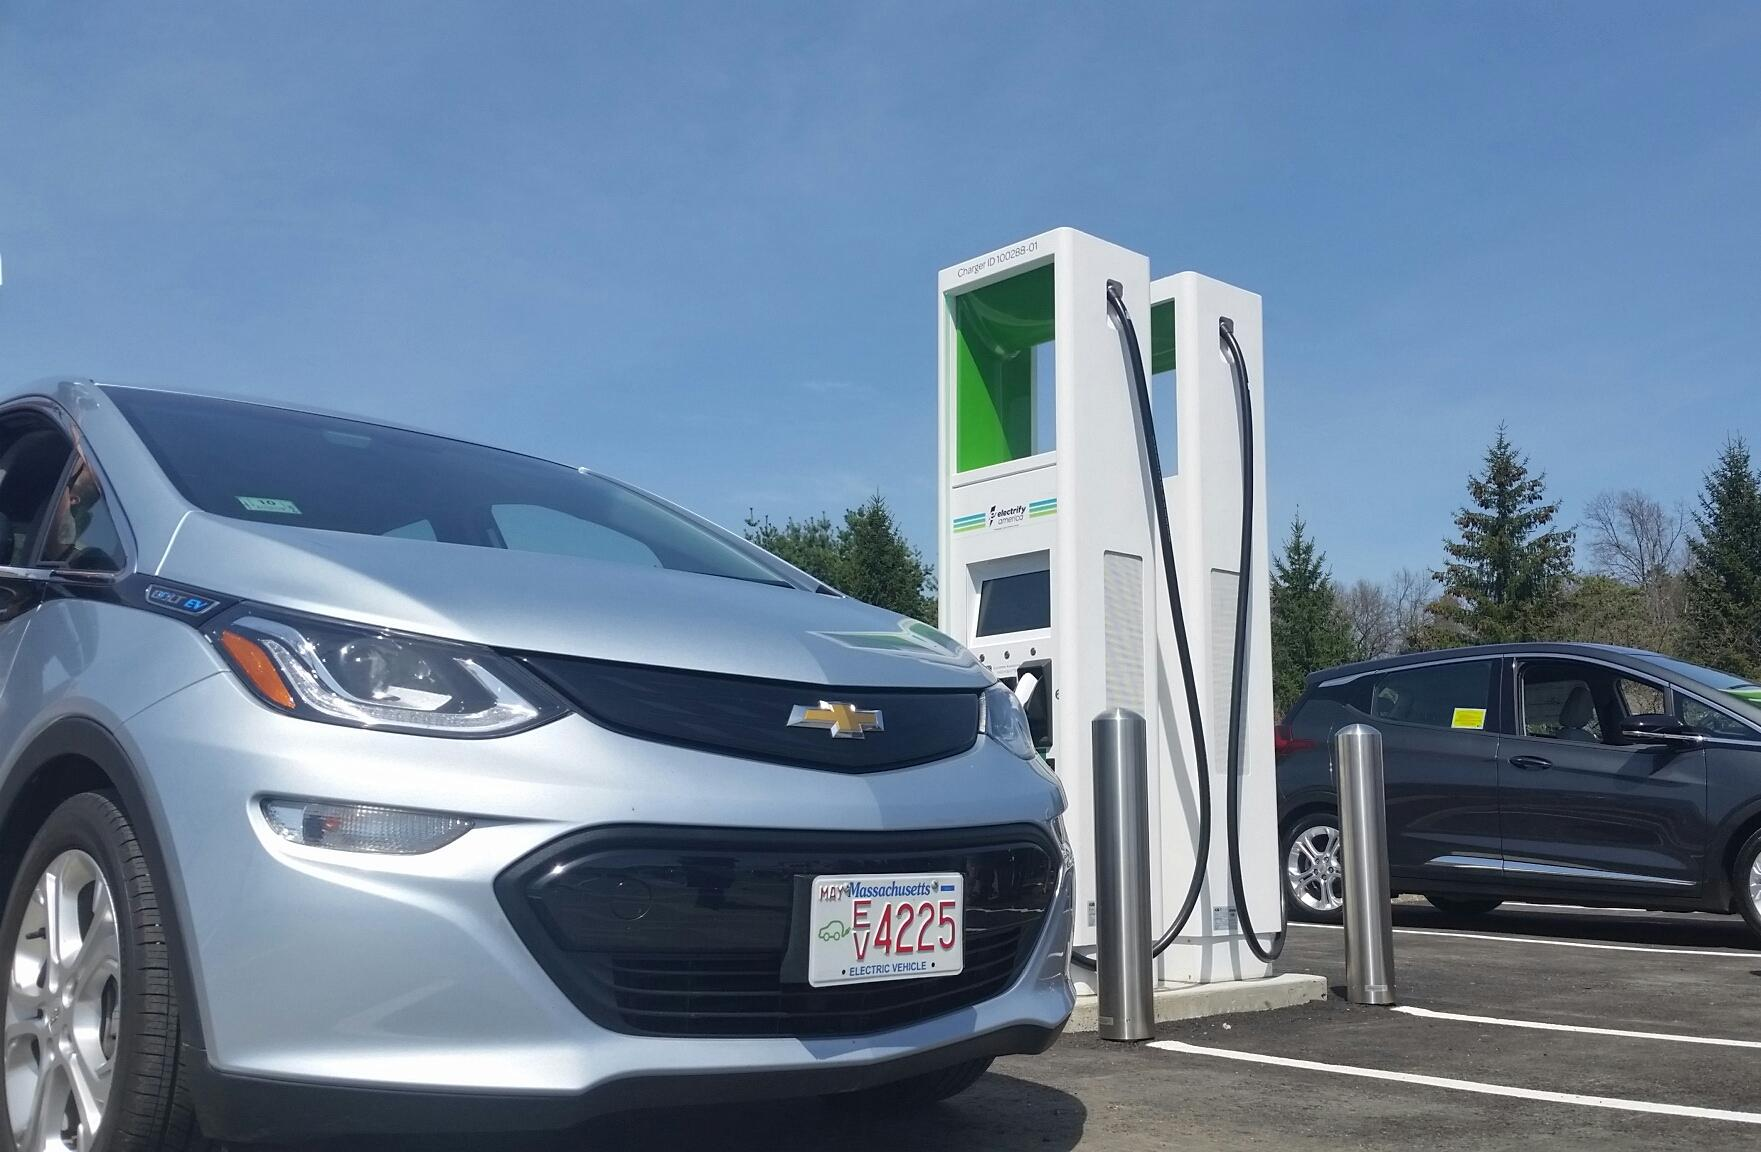 The Electrify America electric vehicle charging station, the first of its kind in the nation, is located in a shopping plaza on Memorial Drive in Chicopee, ...